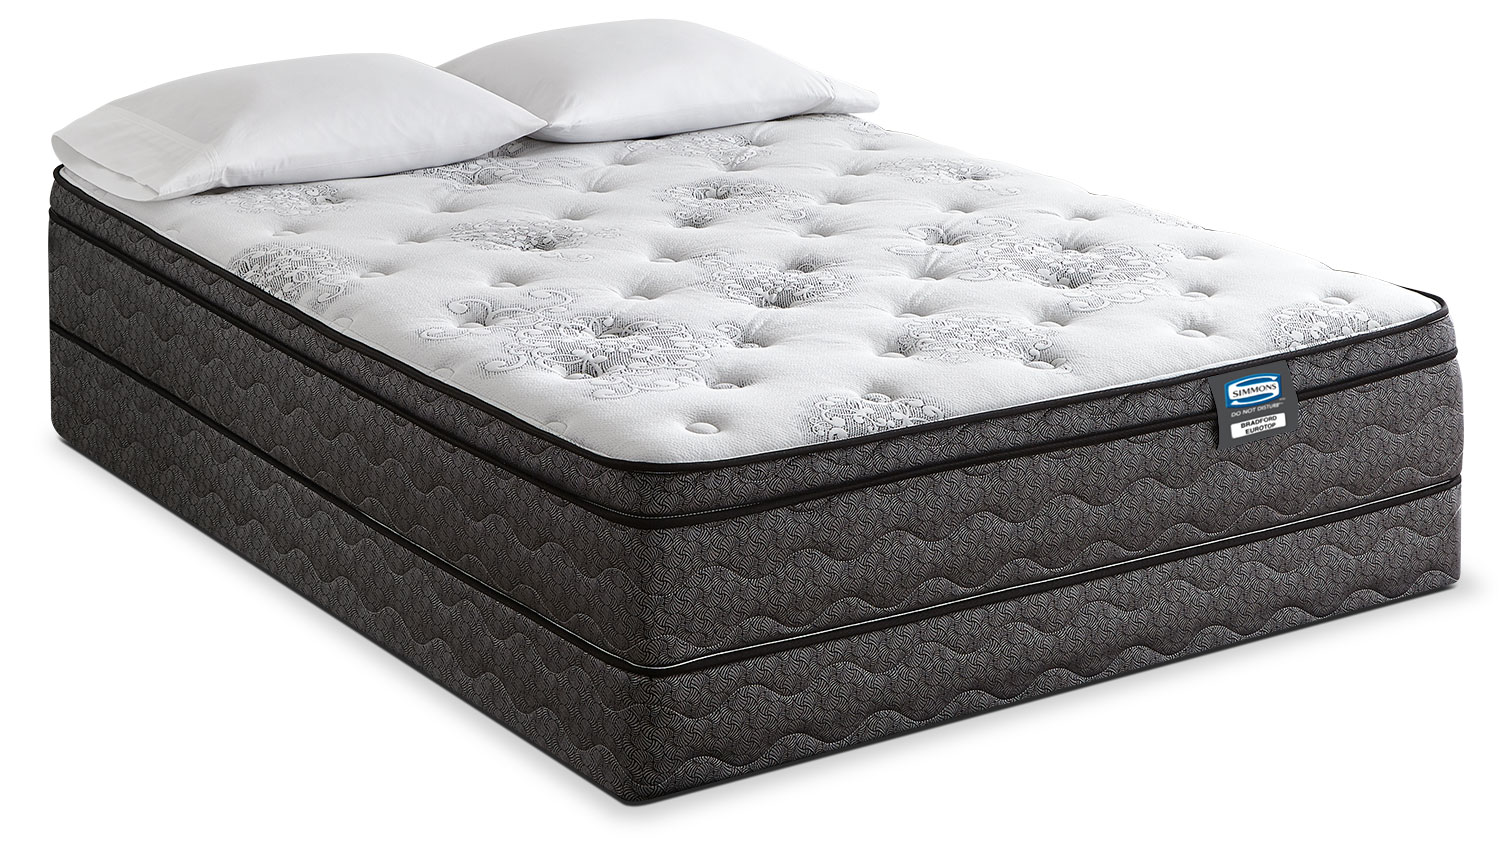 Simmons Do Not Disturb Bradford Euro-Top Firm King Mattress Set